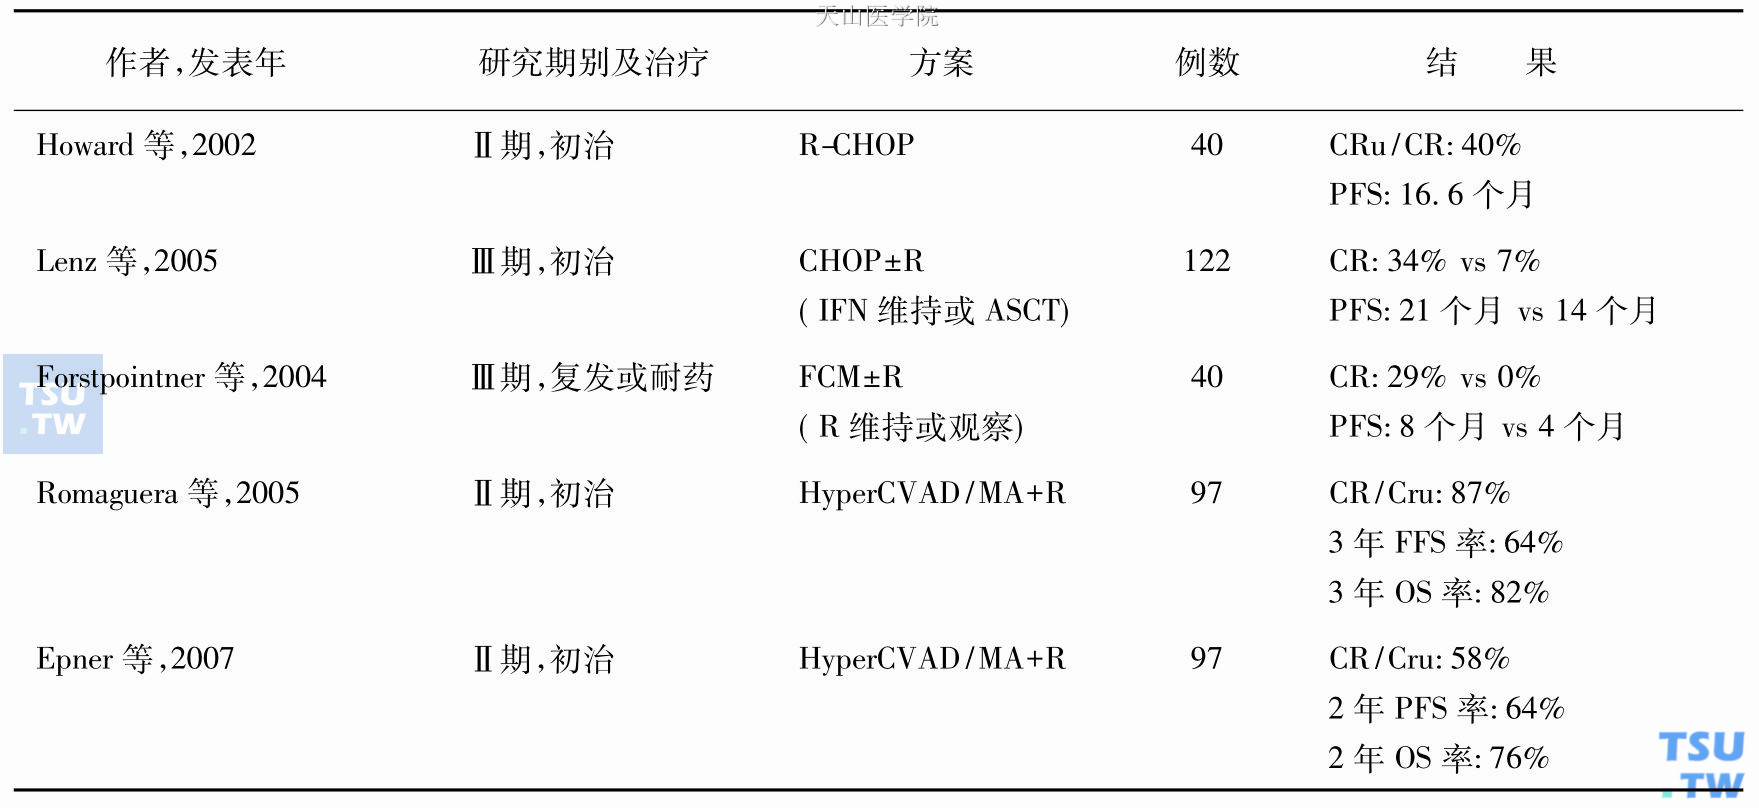 套细胞淋巴瘤(mantle cell lymphoma,MCL)